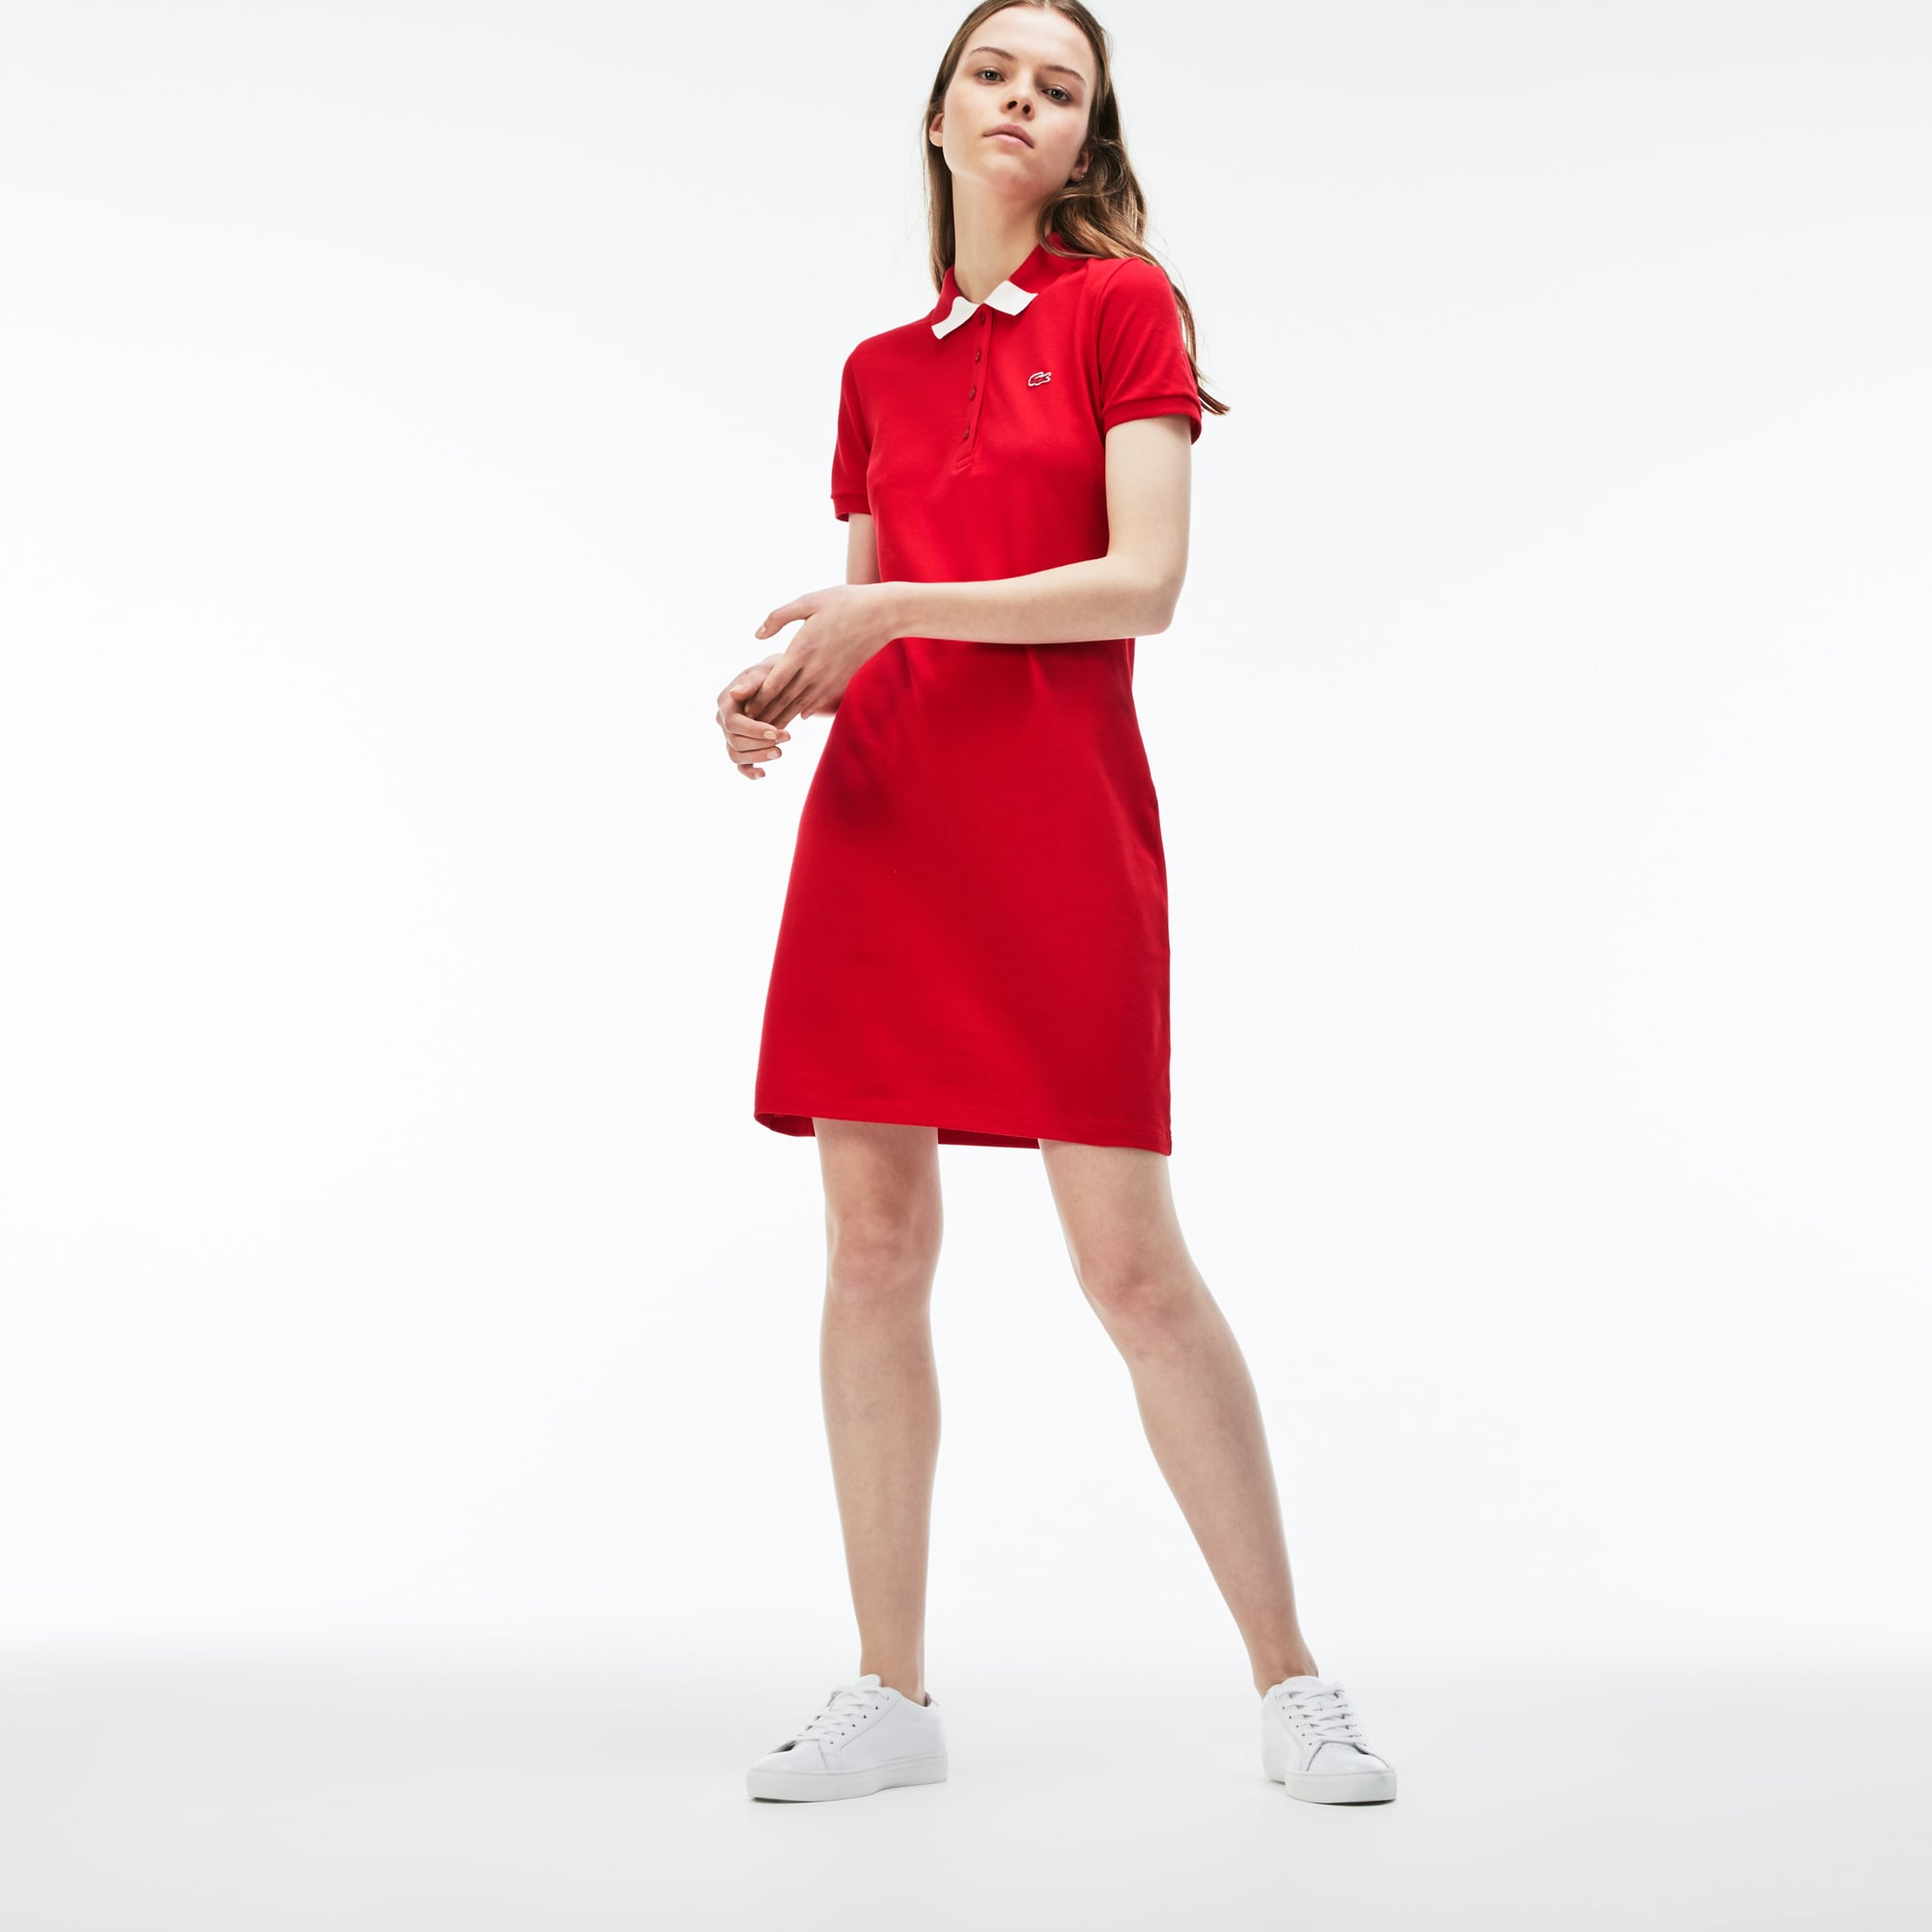 Jurk dames slim fit tweekleurig stretch-minipiqué met polokraag